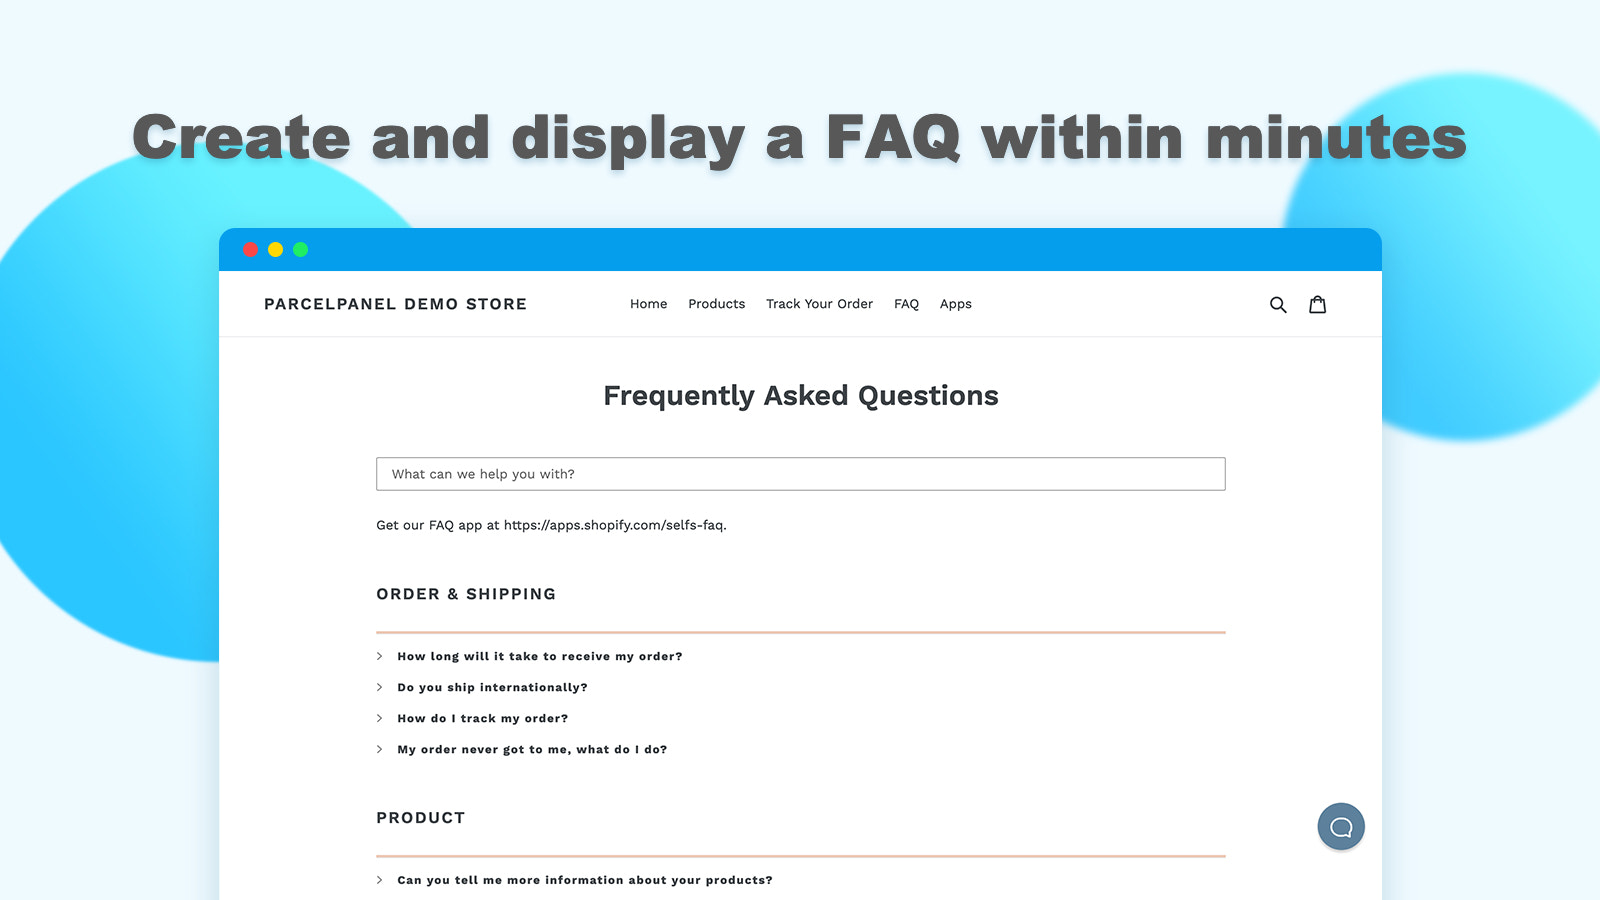 Create FAQ page in minutes